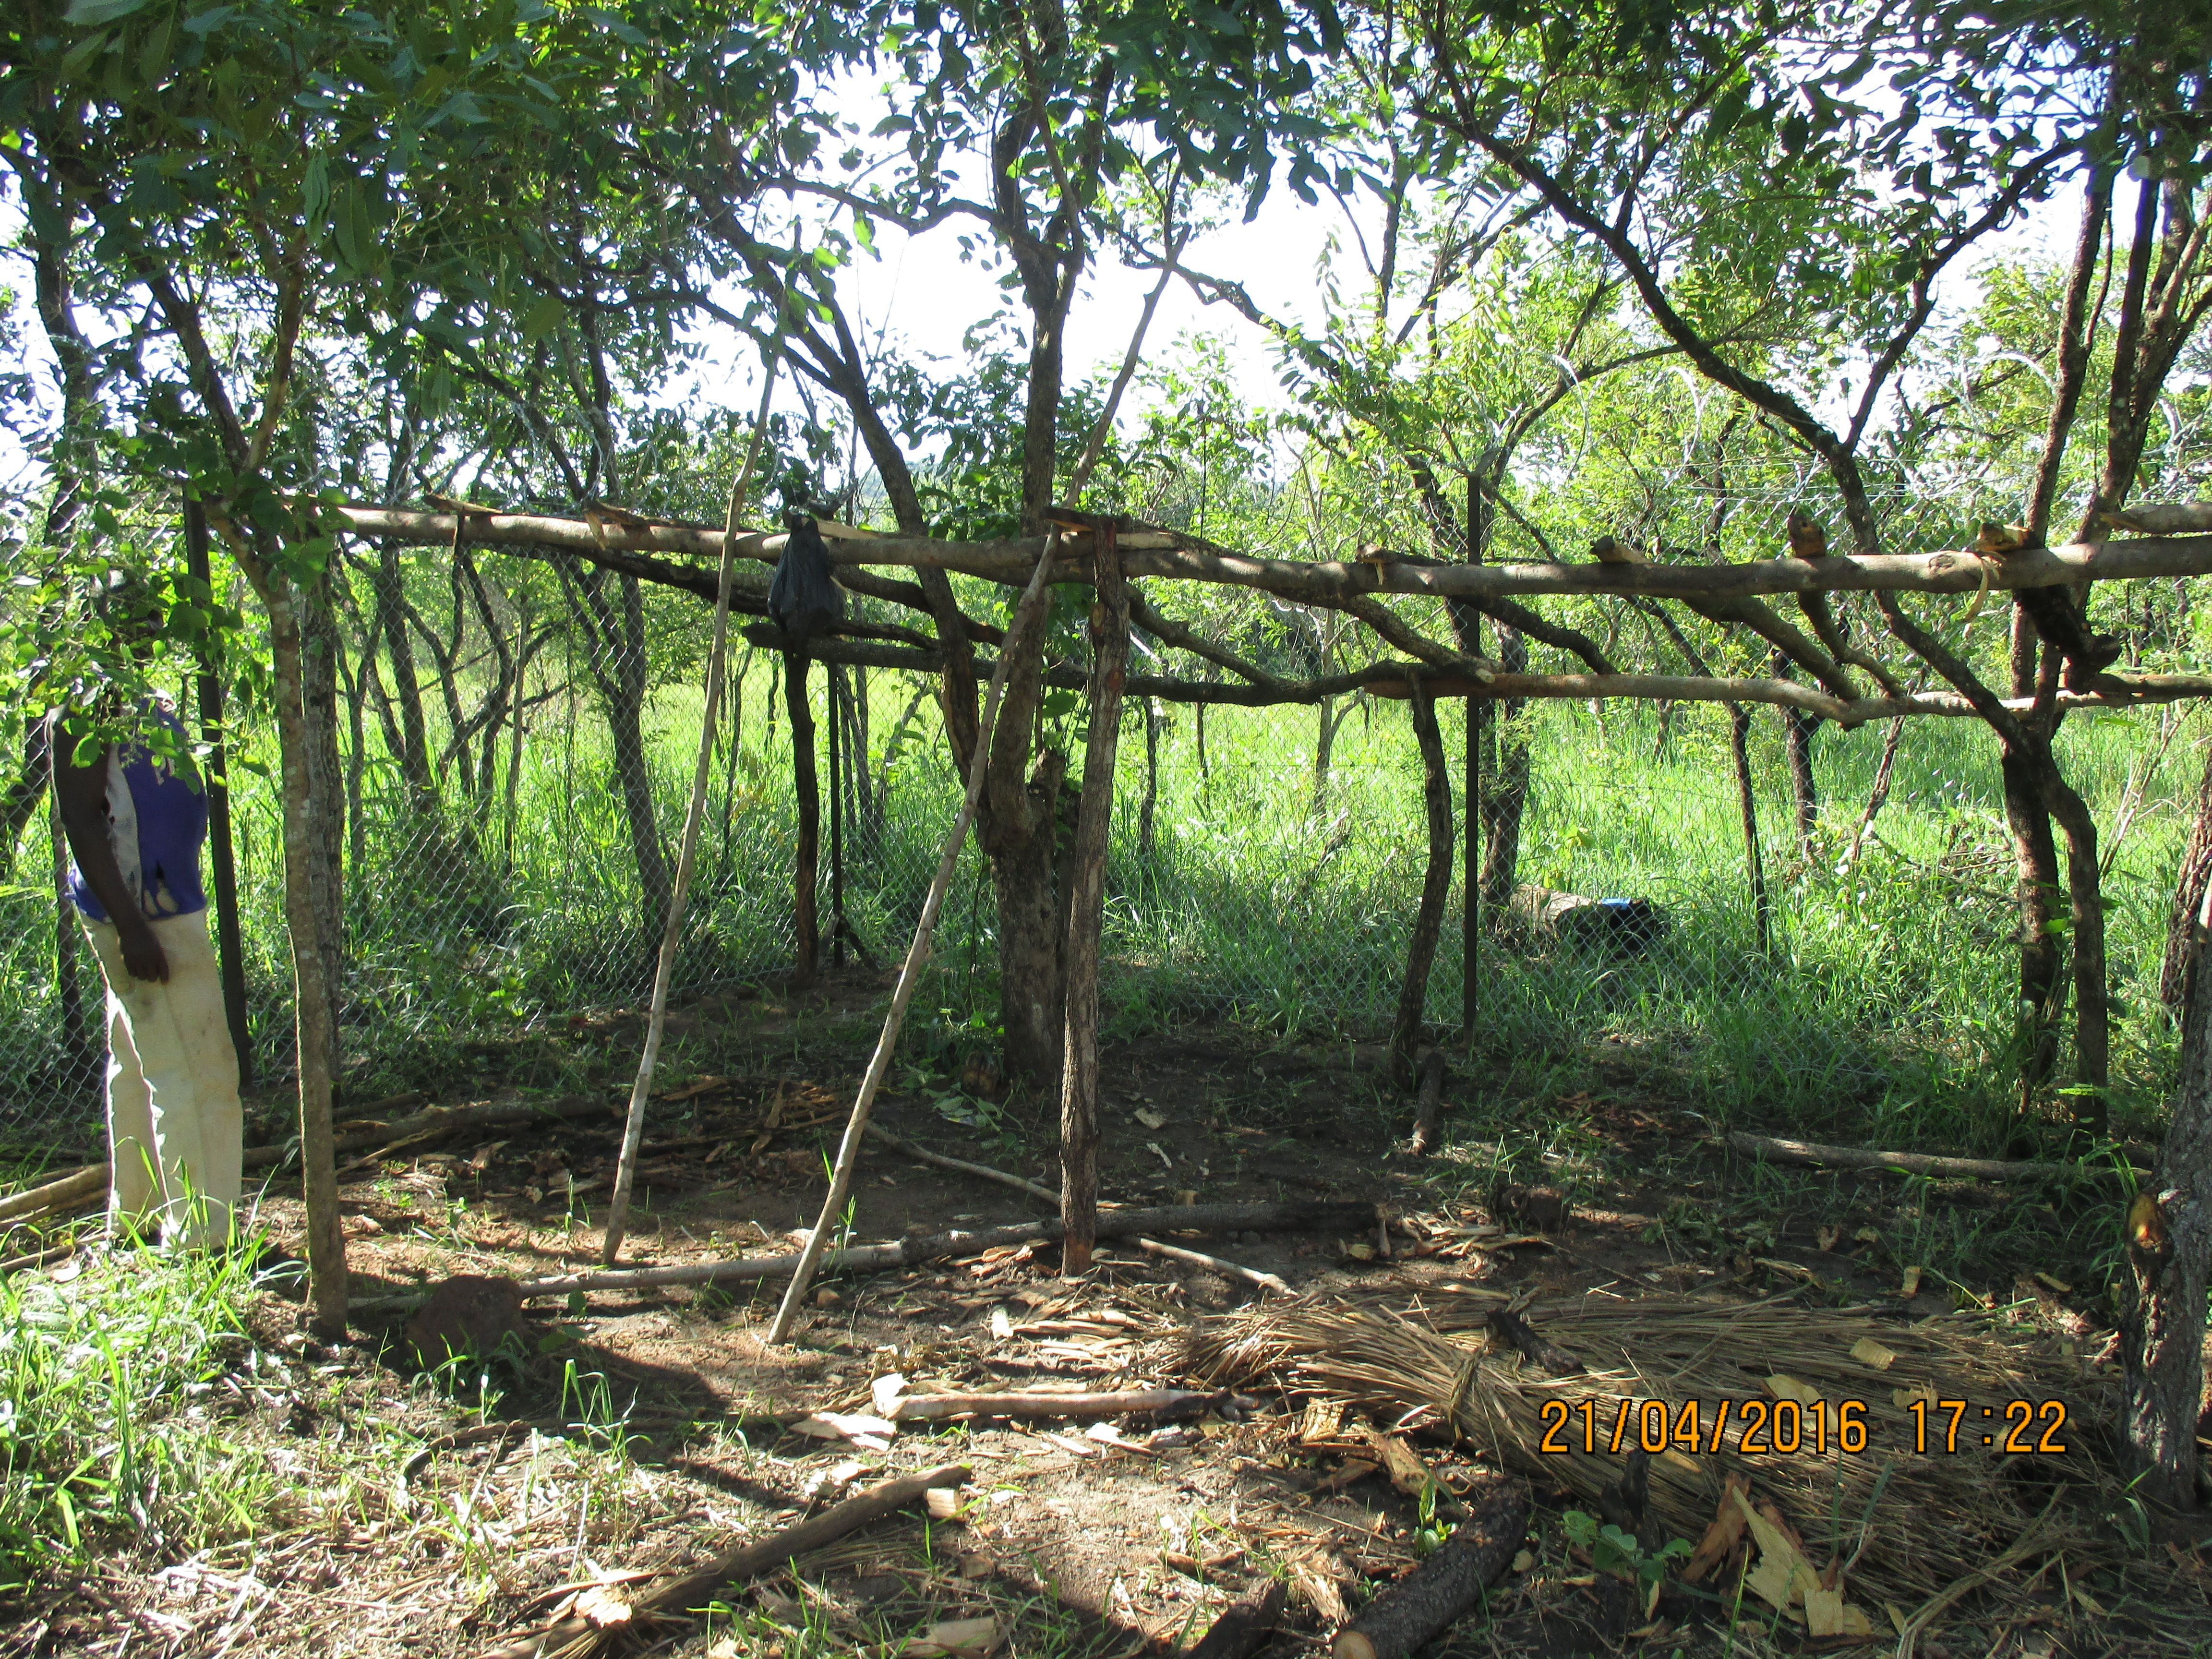 Constructing a shelter to provide plenty of shade and protection from rain.